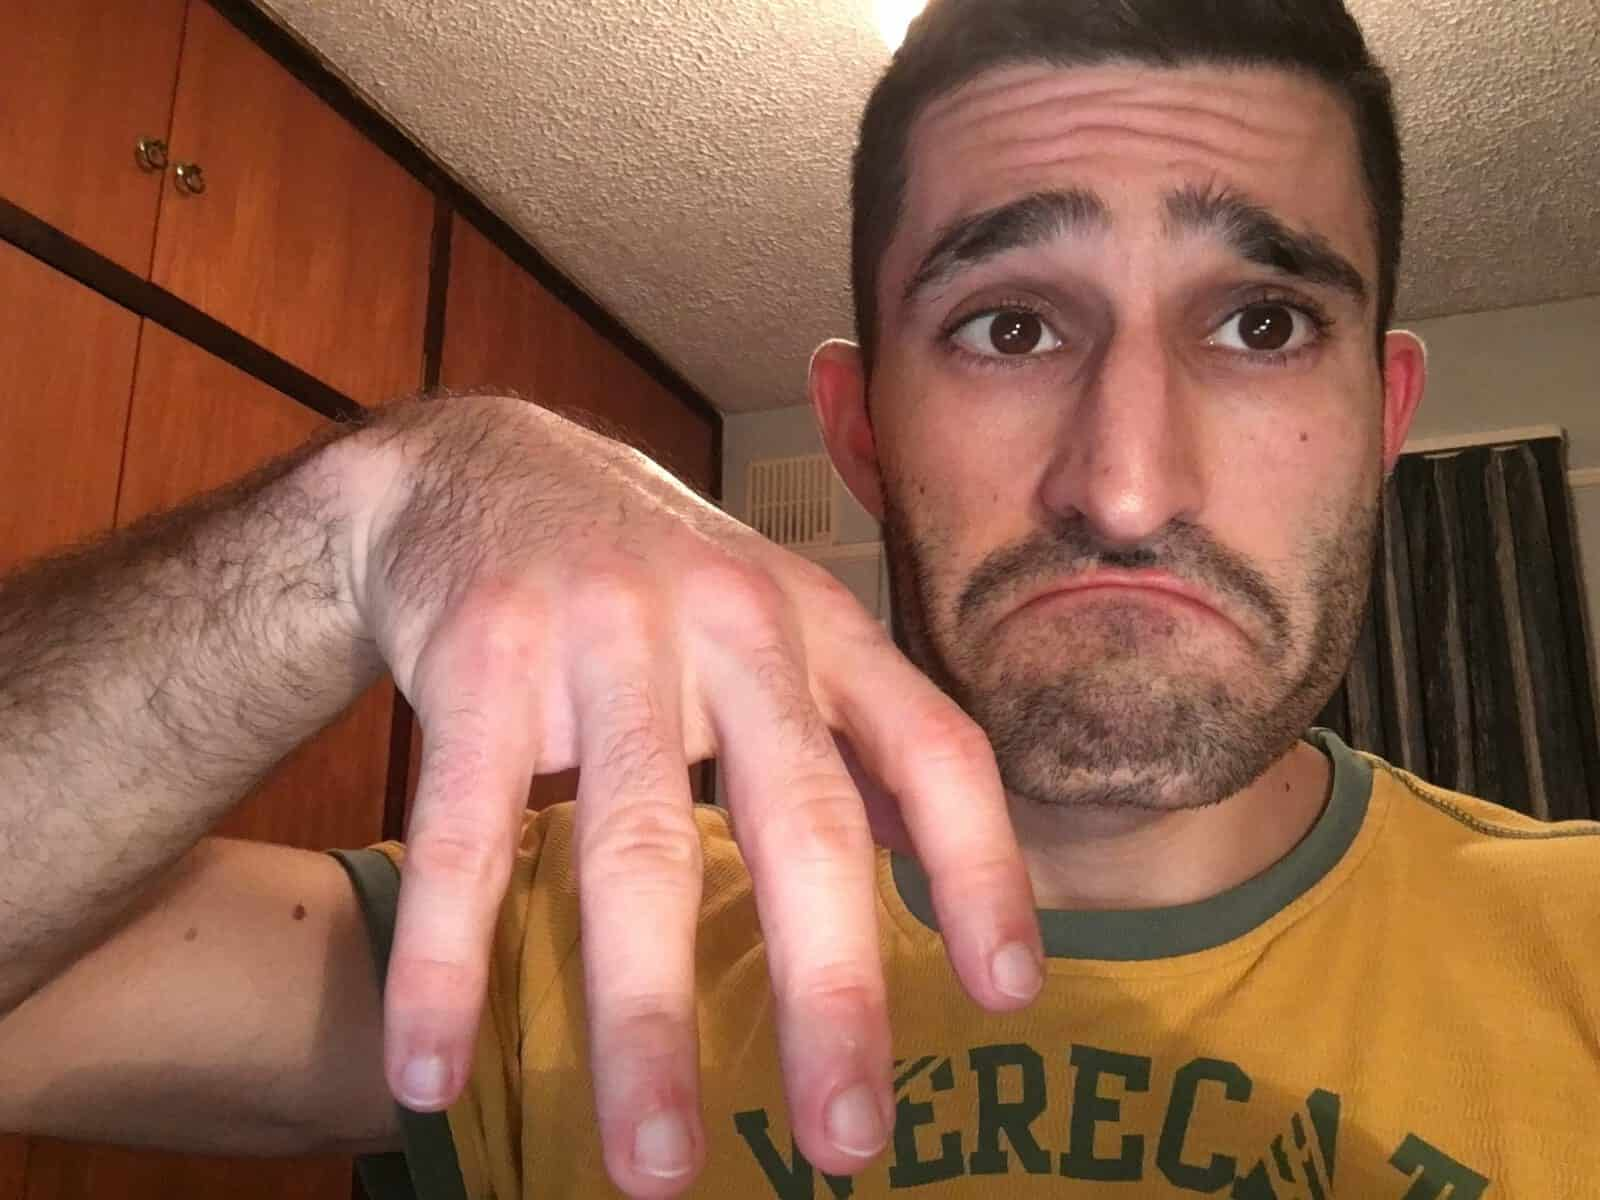 Stefan ringless finger